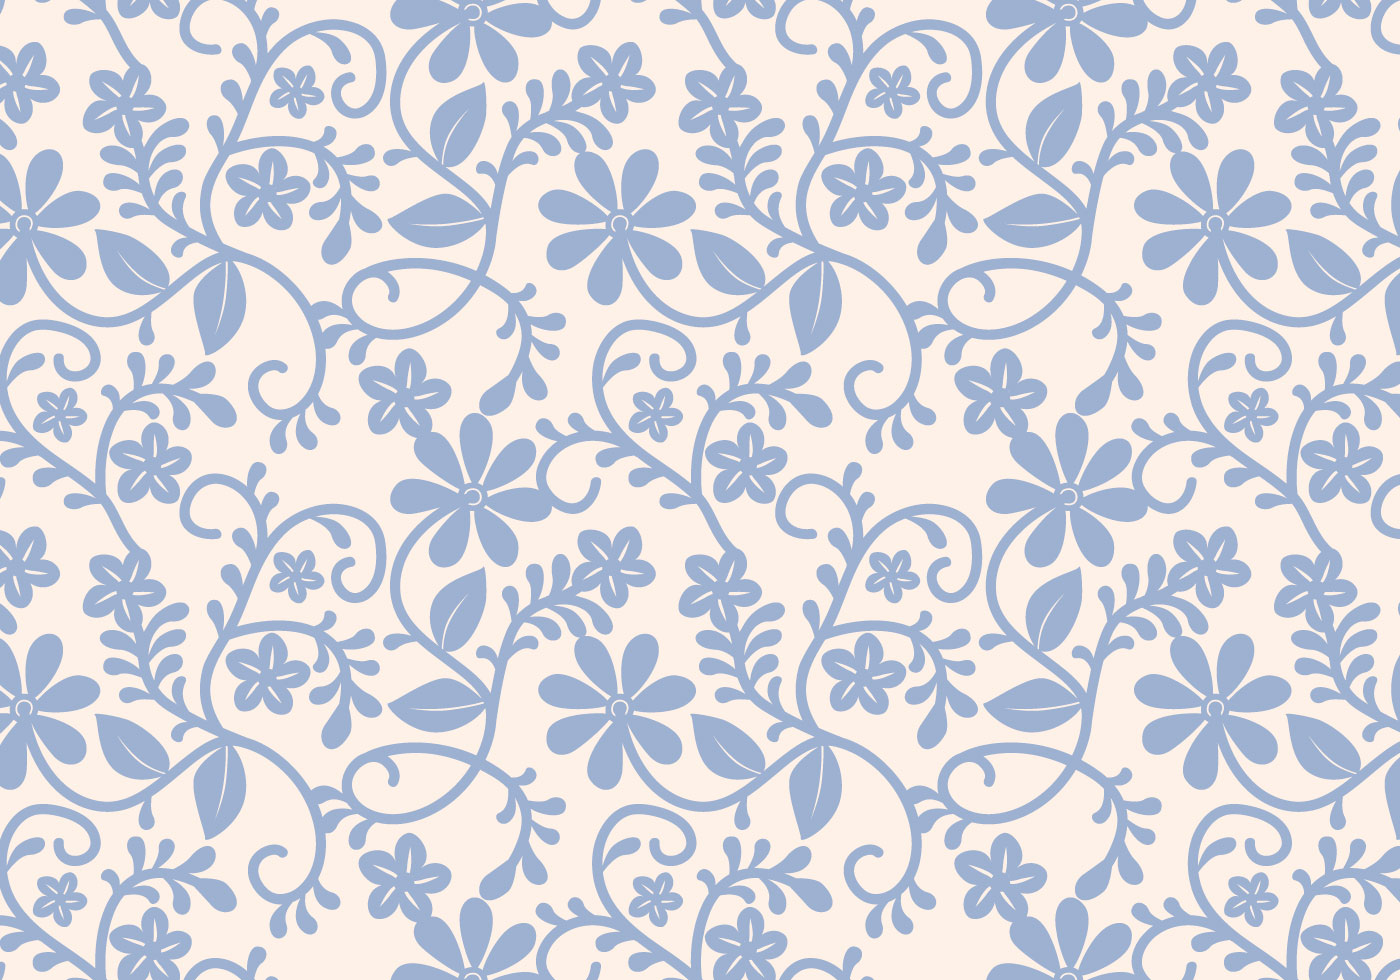 seamless lace pattern vector download free vector art  stock graphics   images vector lace pattern photoshop vector lace pattern free